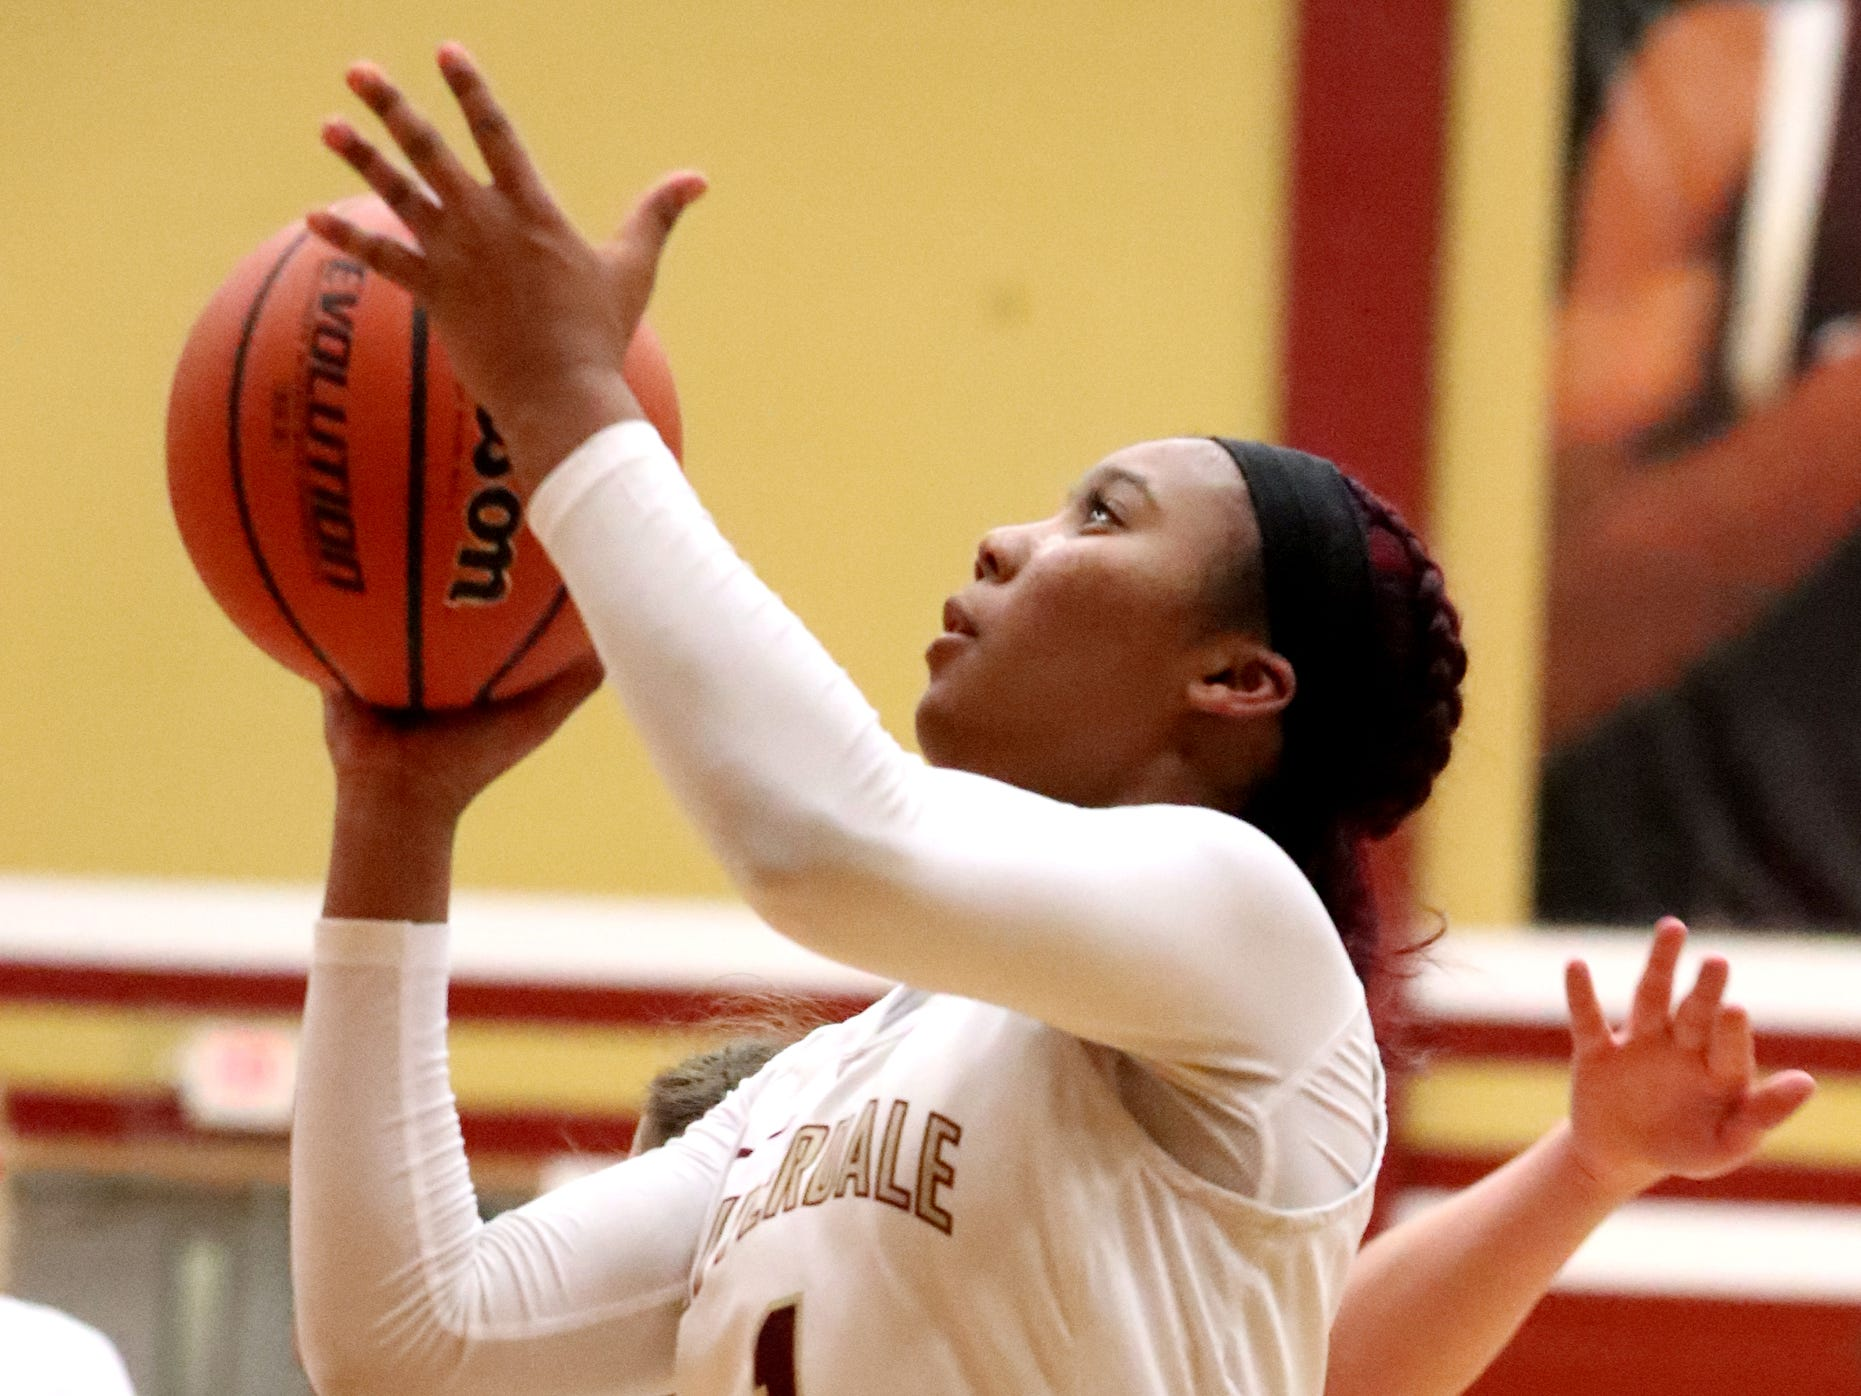 RiverdaleÕs Alasia Hayes (1) goes up for a basket during the game against Lebanon at Riverdale on Friday, Nov. 30, 2018.